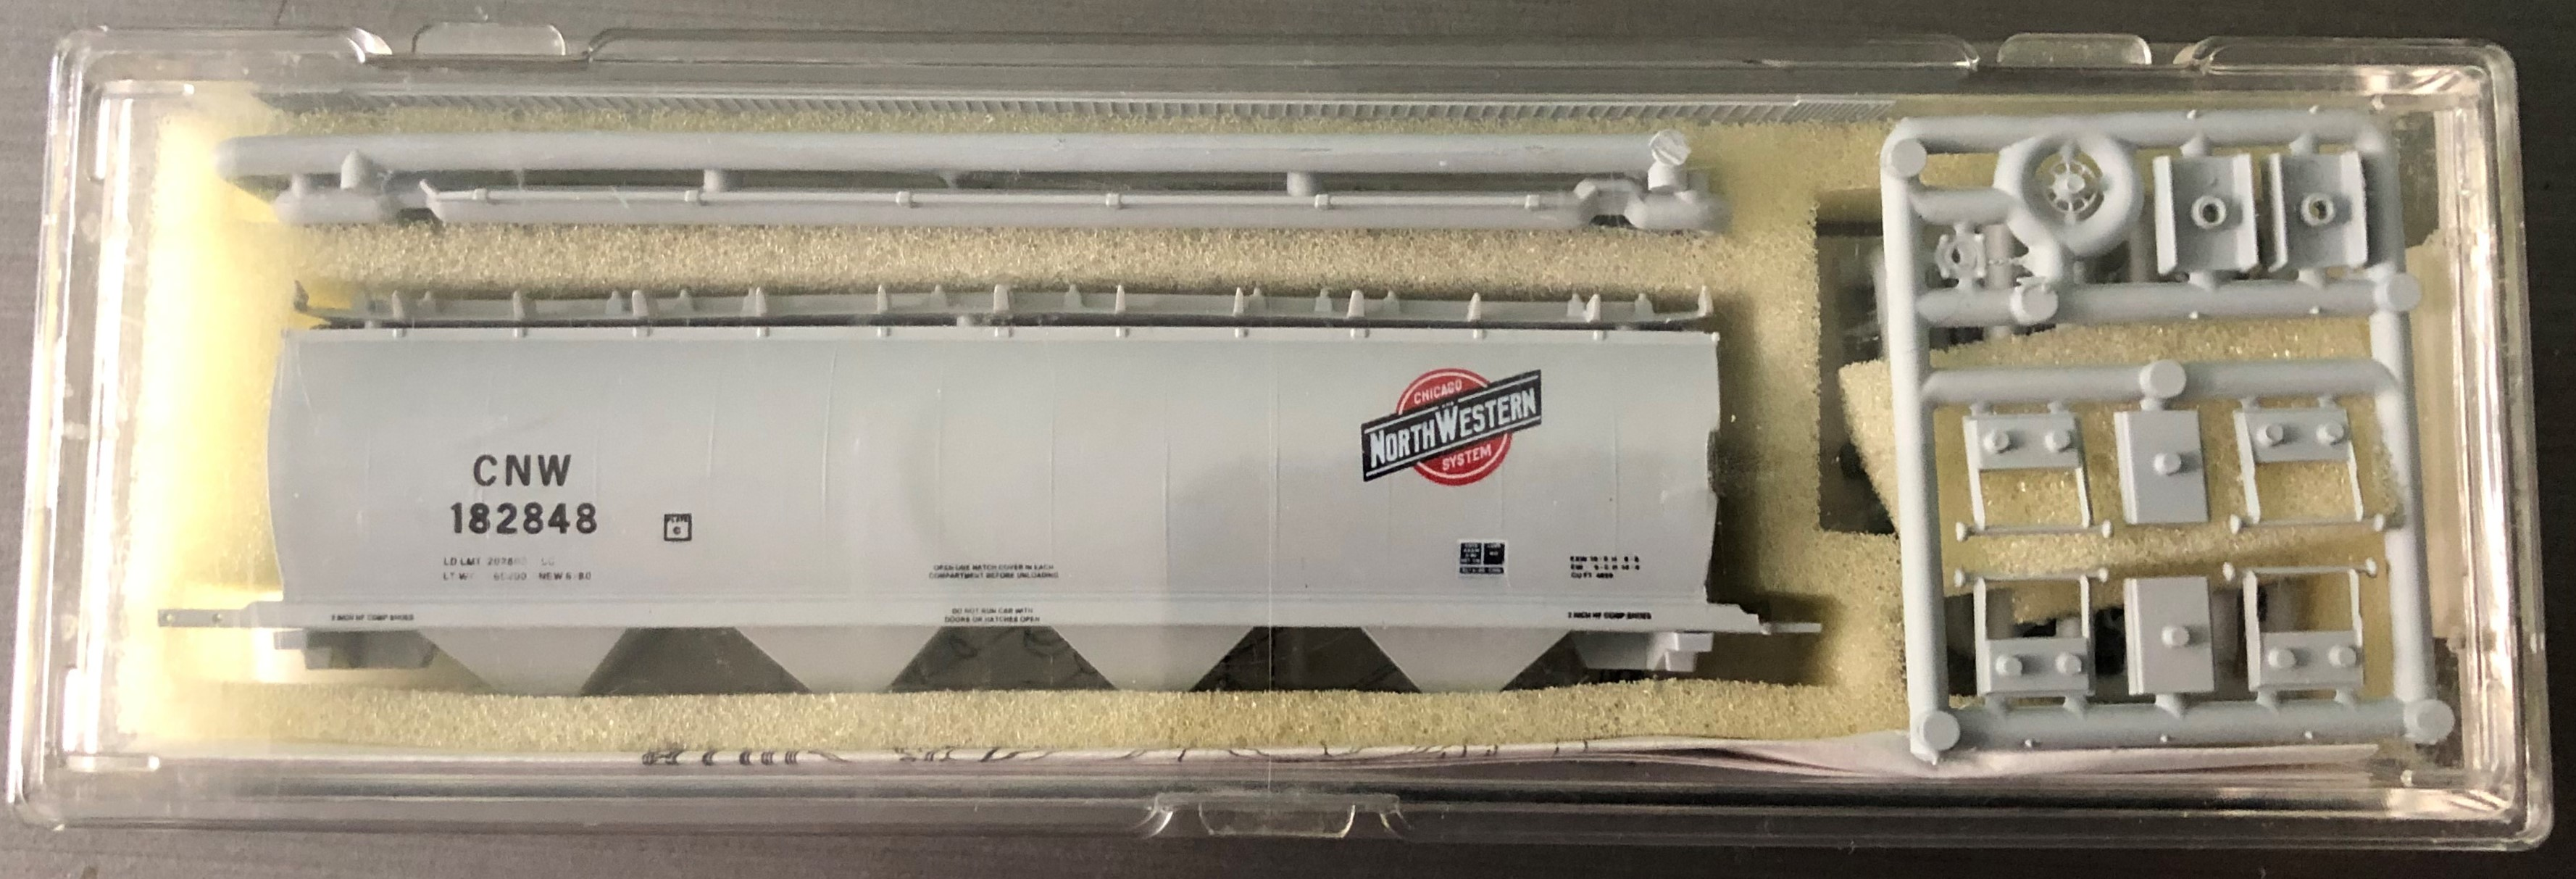 N Scale - InterMountain - 60123-03 - Covered Hopper, 4-Bay, Cylindrical - Chicago & North Western - 182860